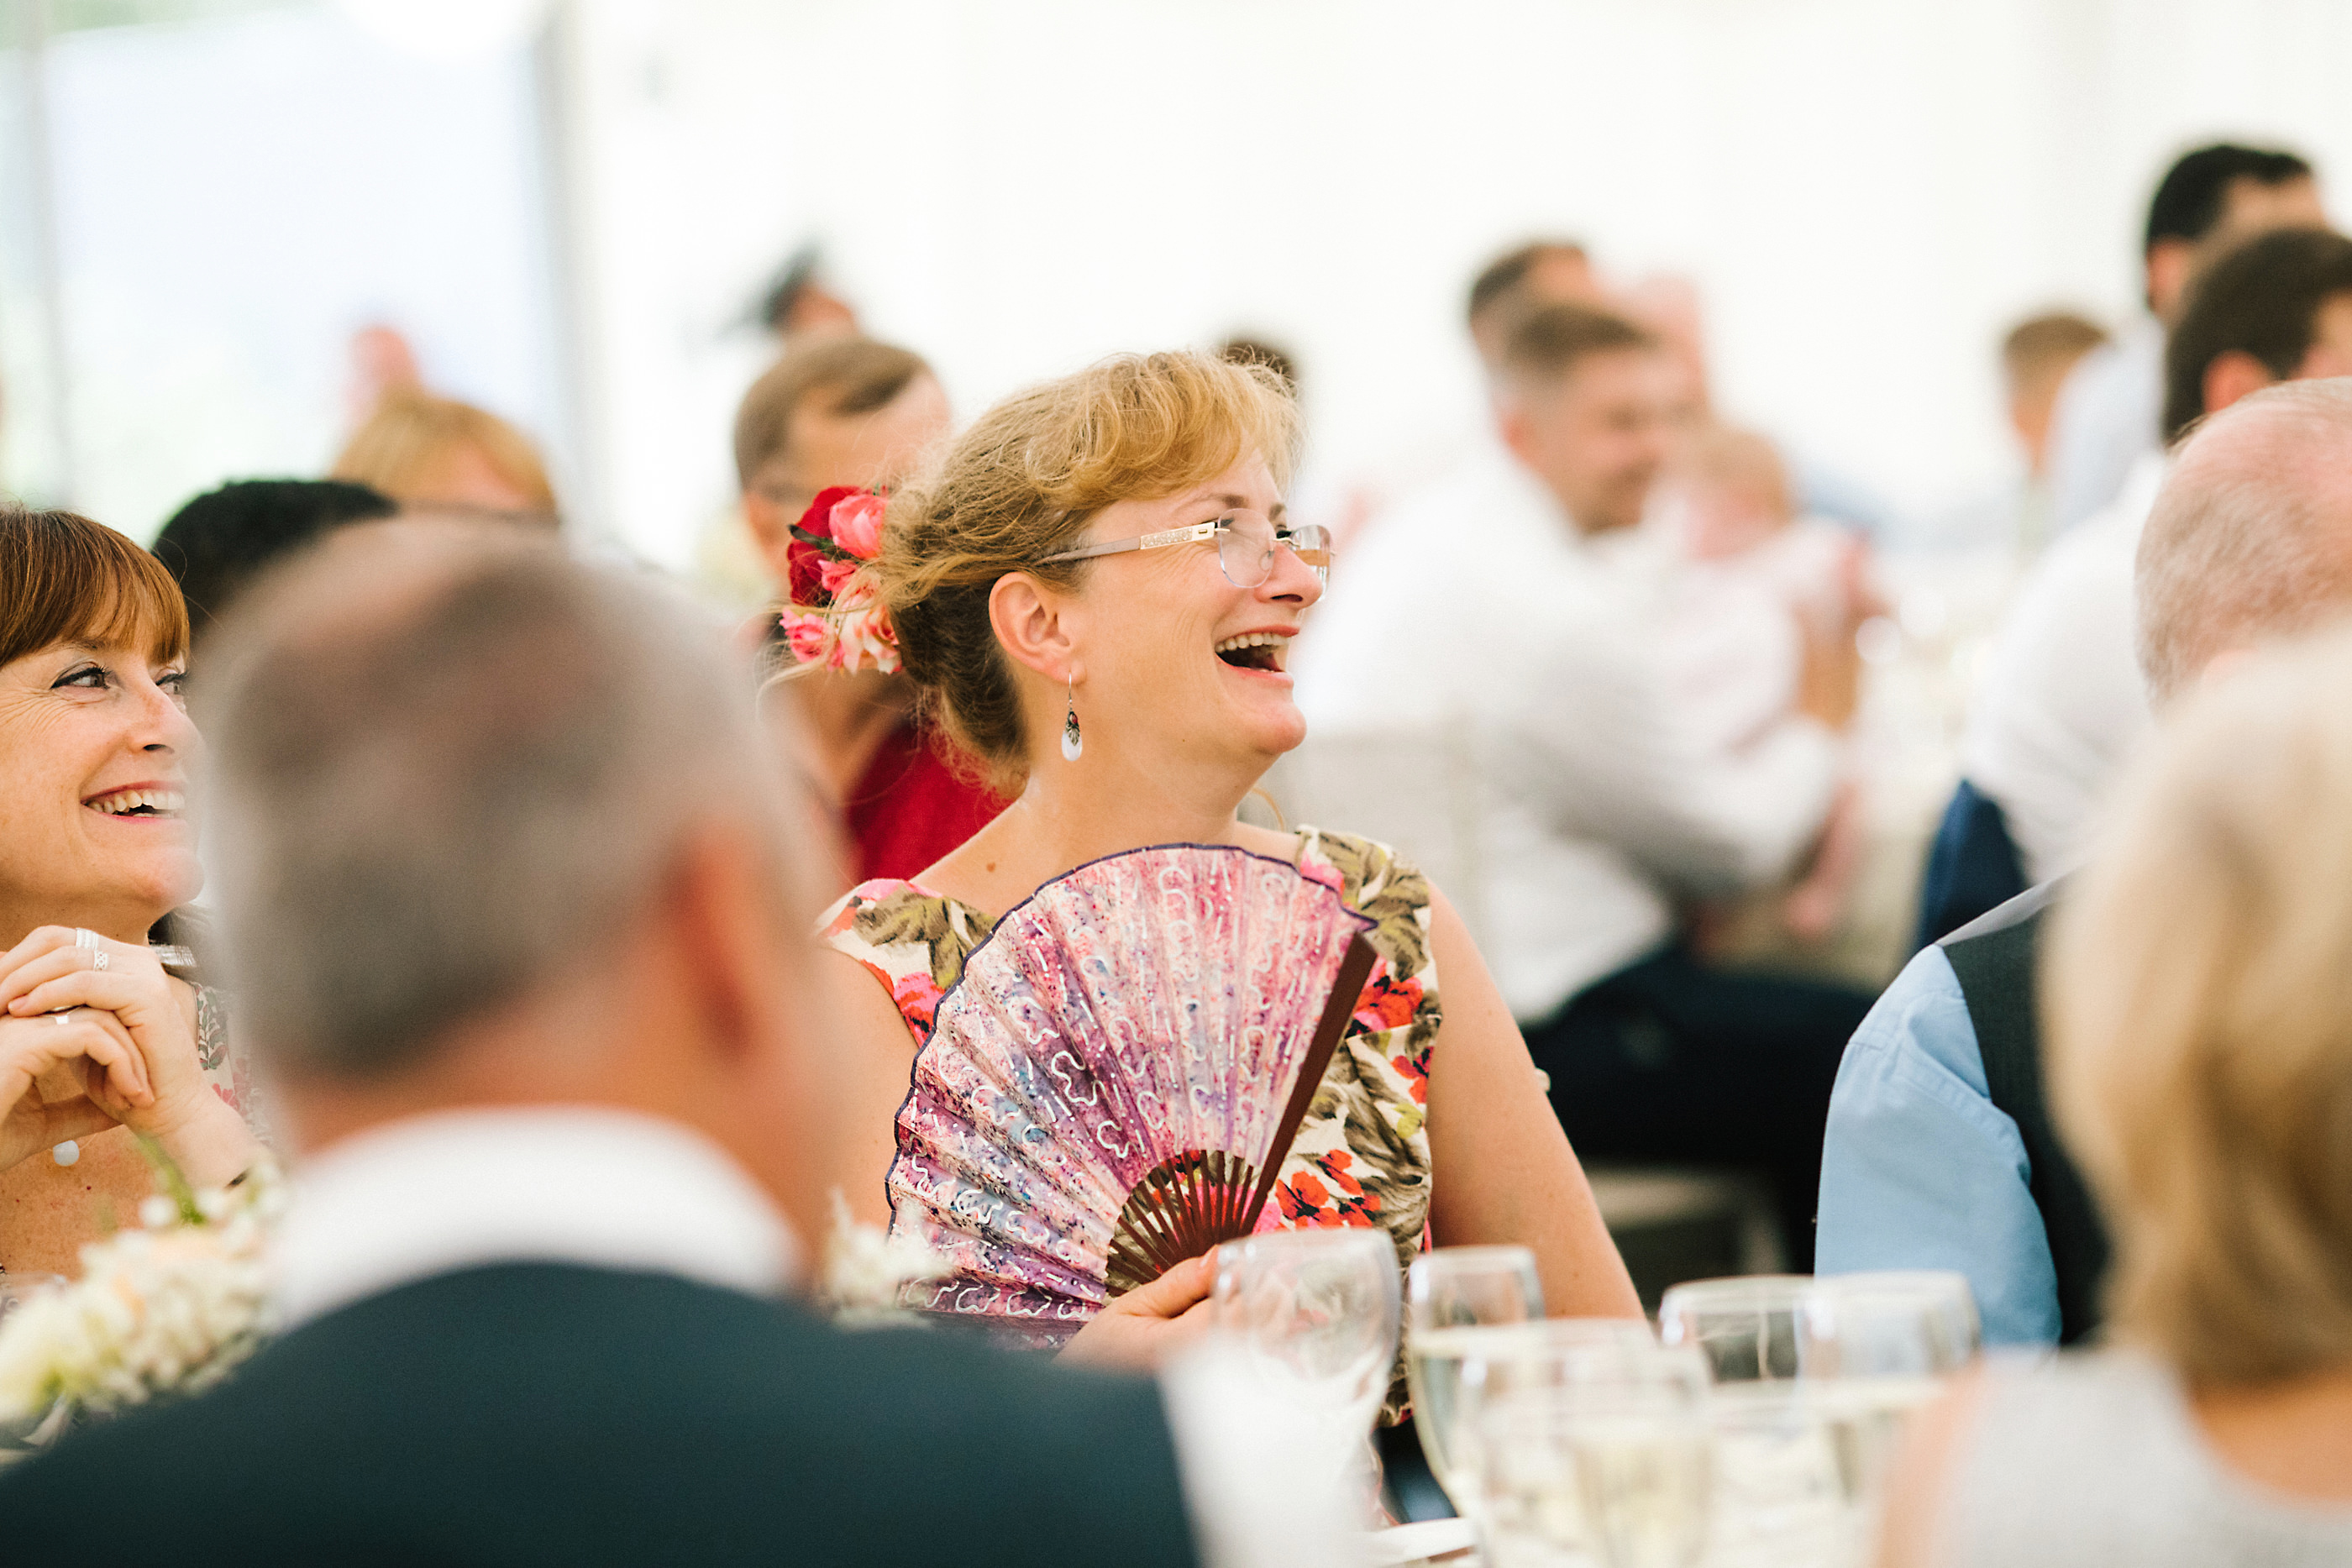 floral fan at wedding